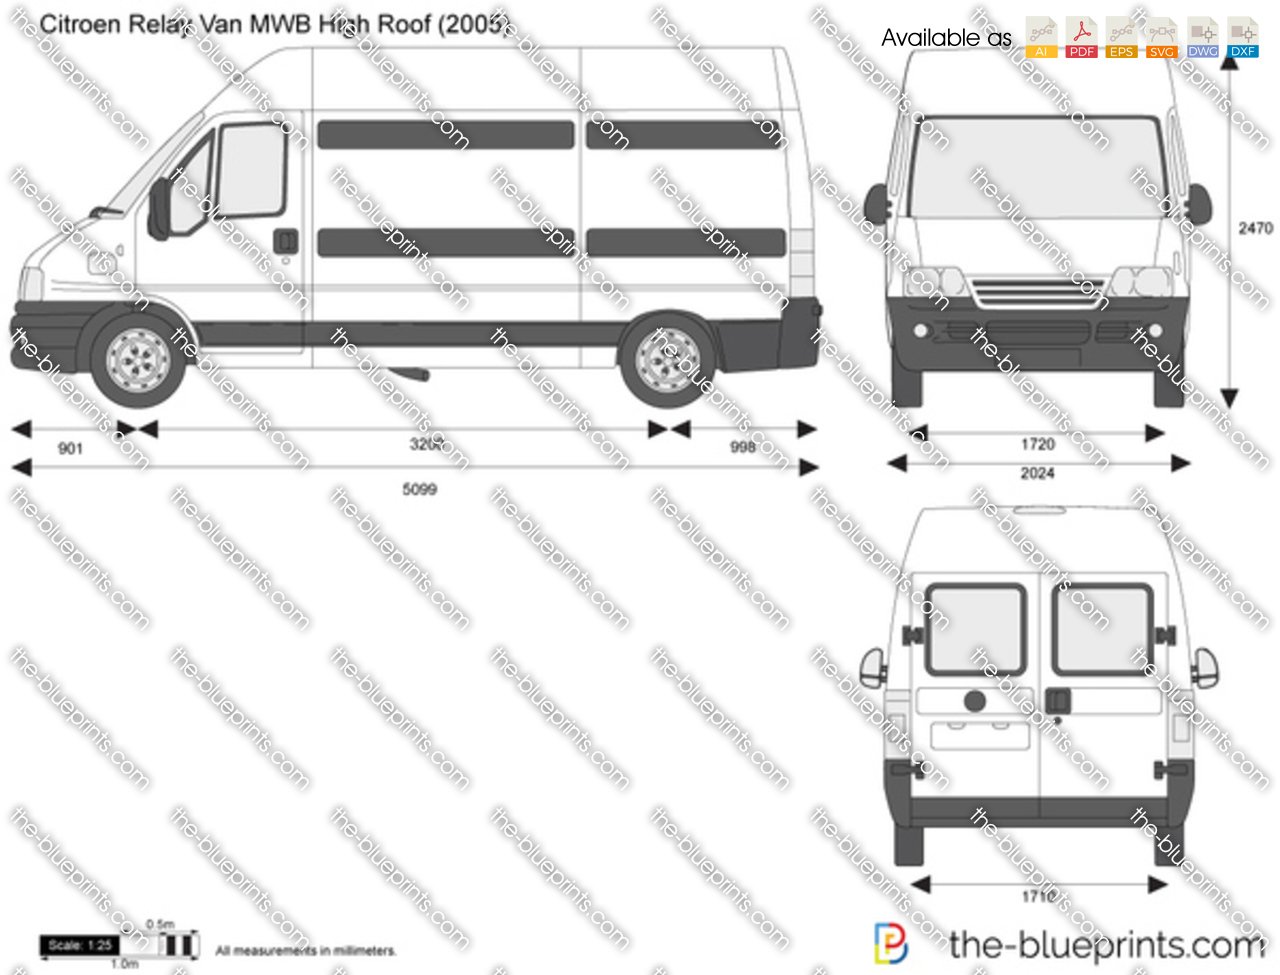 citroen relay van mwb high roof vector drawing. Black Bedroom Furniture Sets. Home Design Ideas